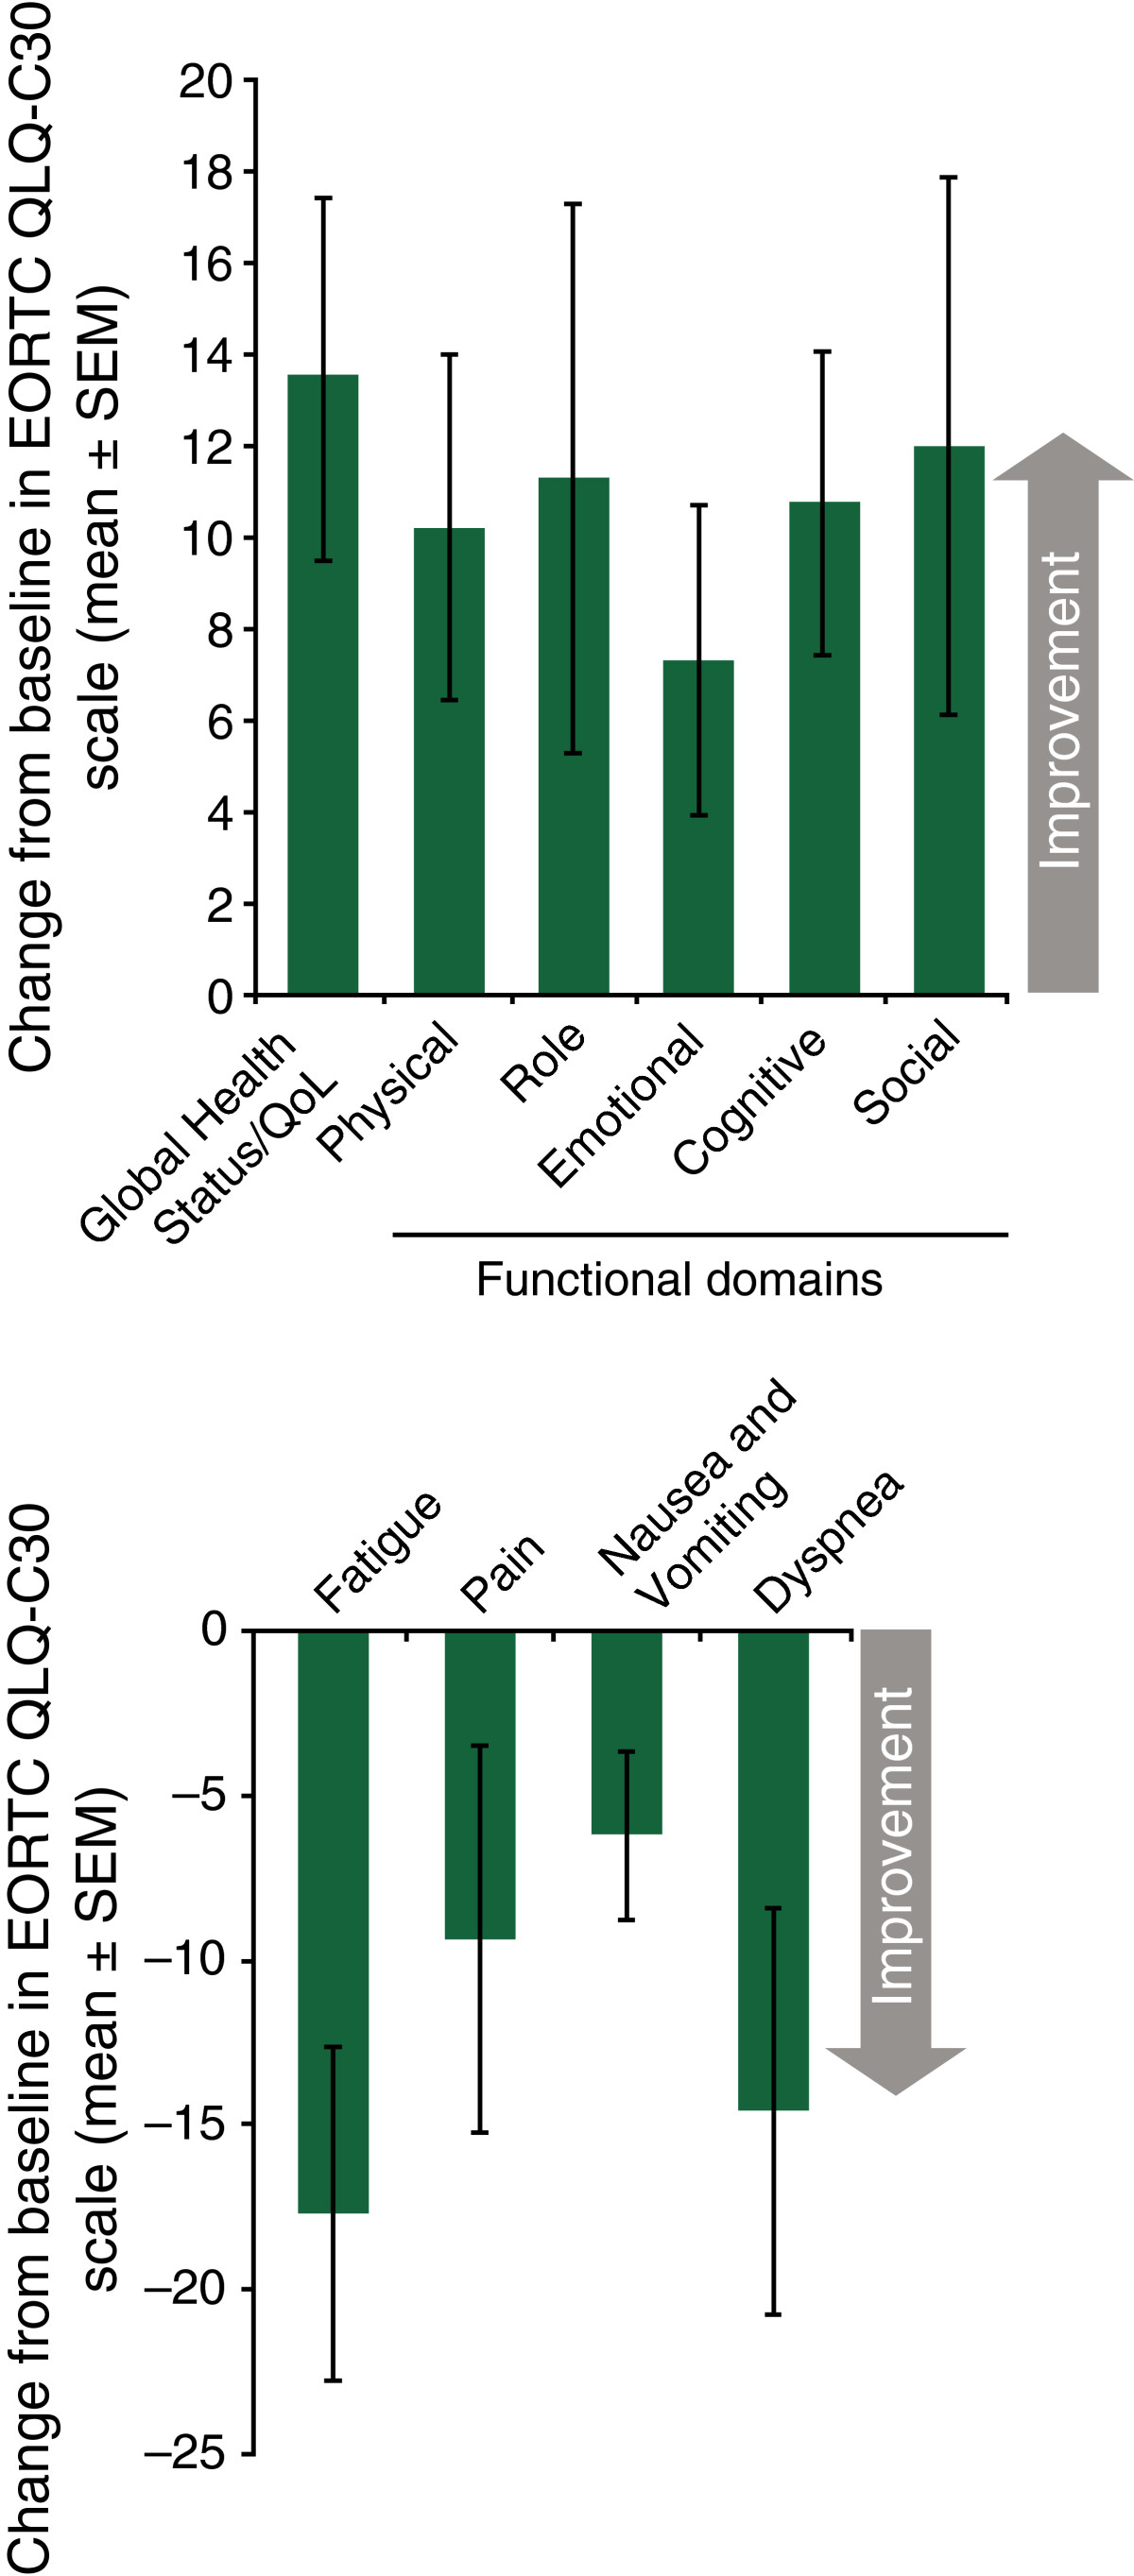 http://static-content.springer.com/image/art%3A10.1186%2F1756-8722-6-81/MediaObjects/13045_2013_Article_419_Fig3_HTML.jpg